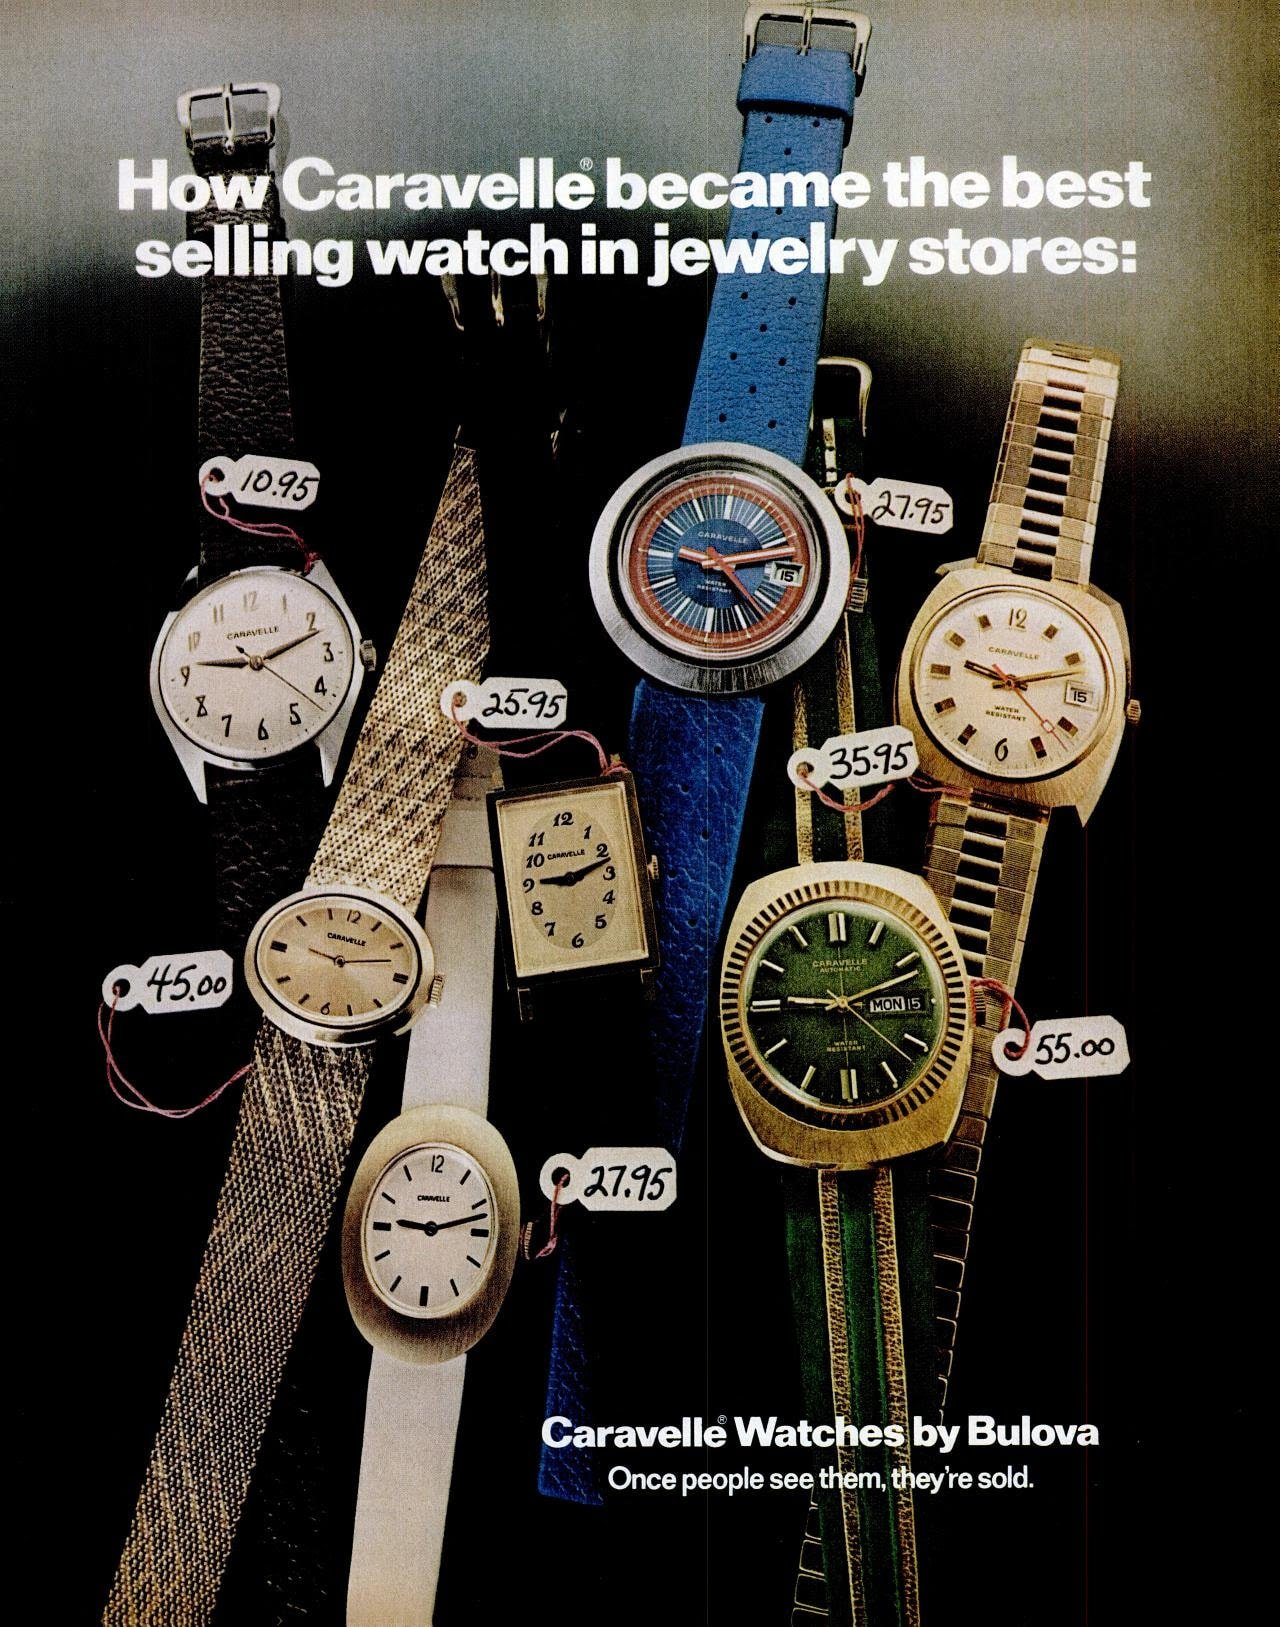 Vintage Caravelle watches by Bulova (1972)